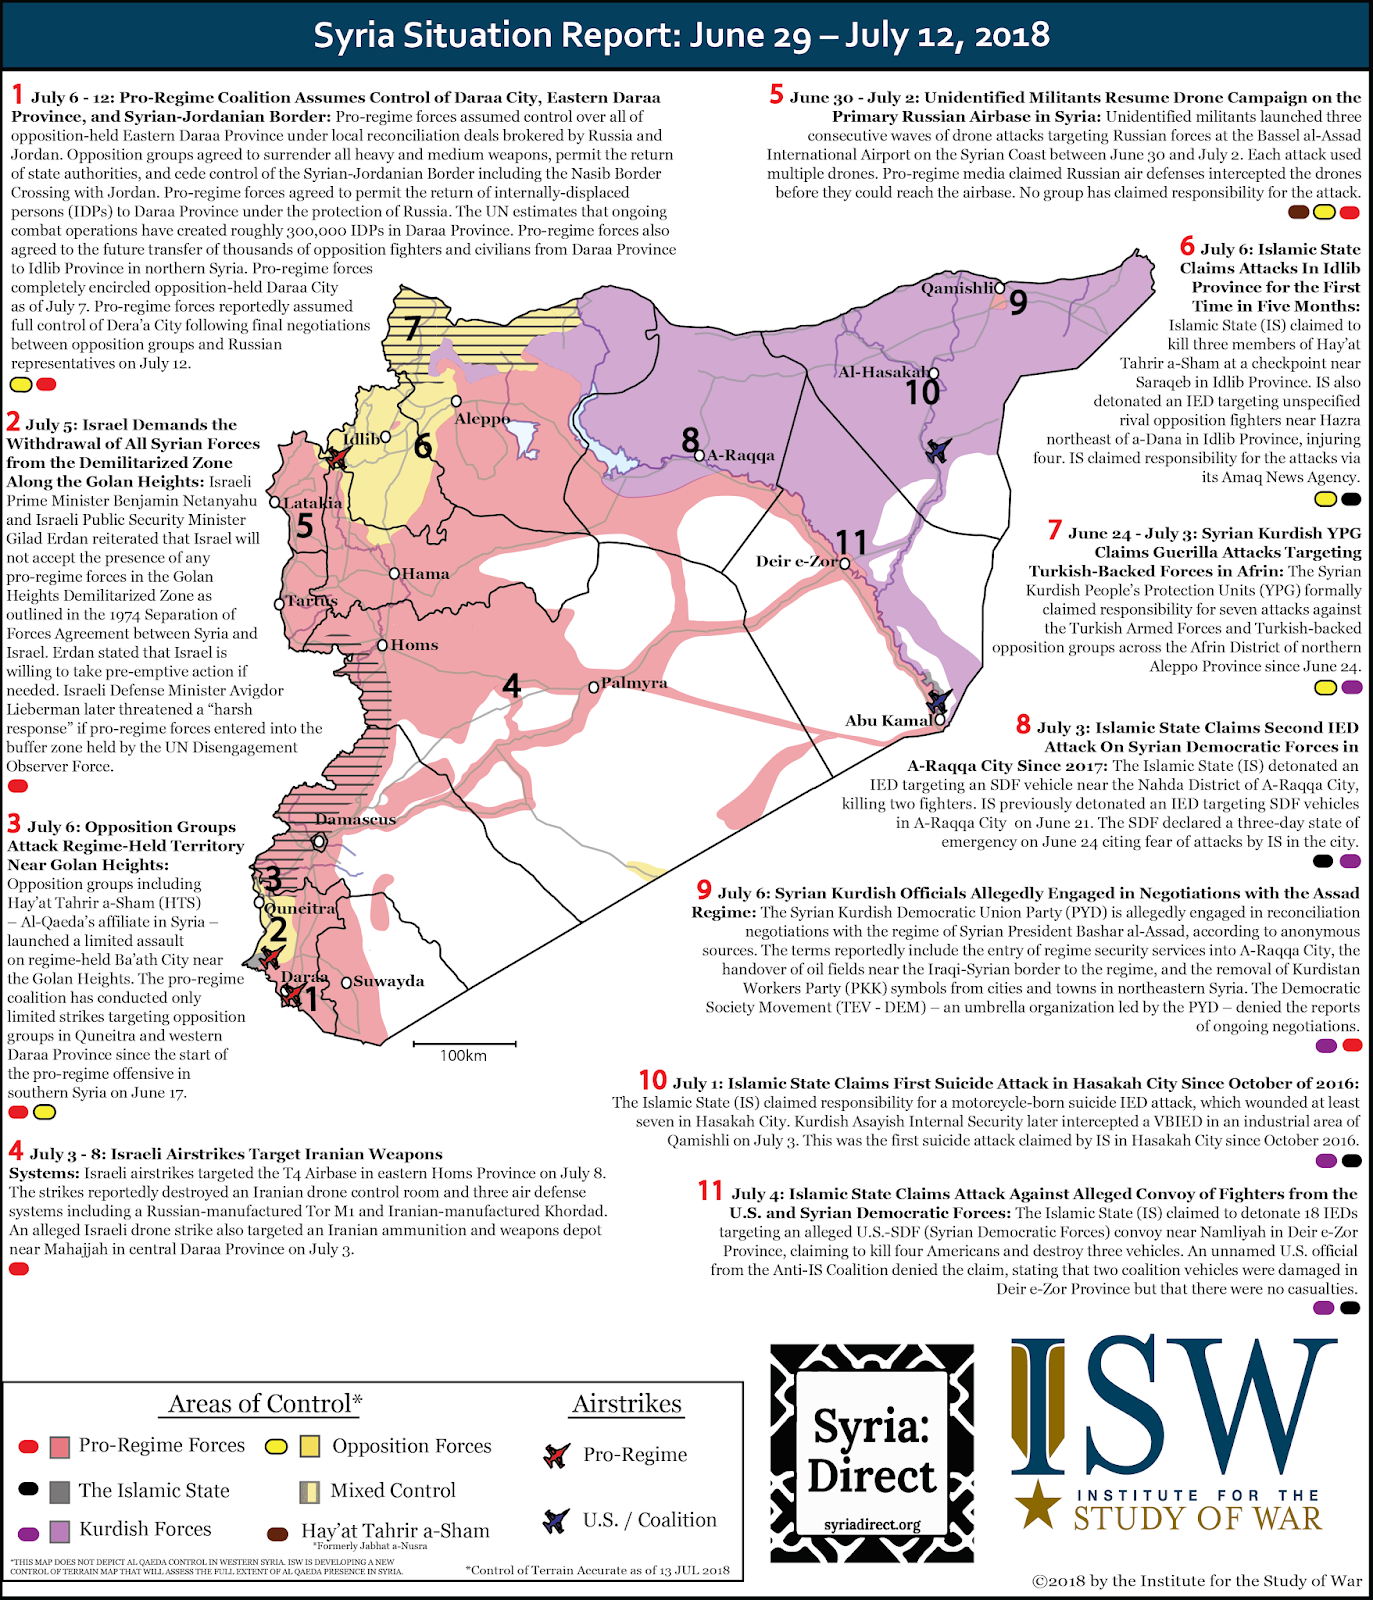 read isw s assessment of the threat that russia and iran pose to american forces in eastern syria